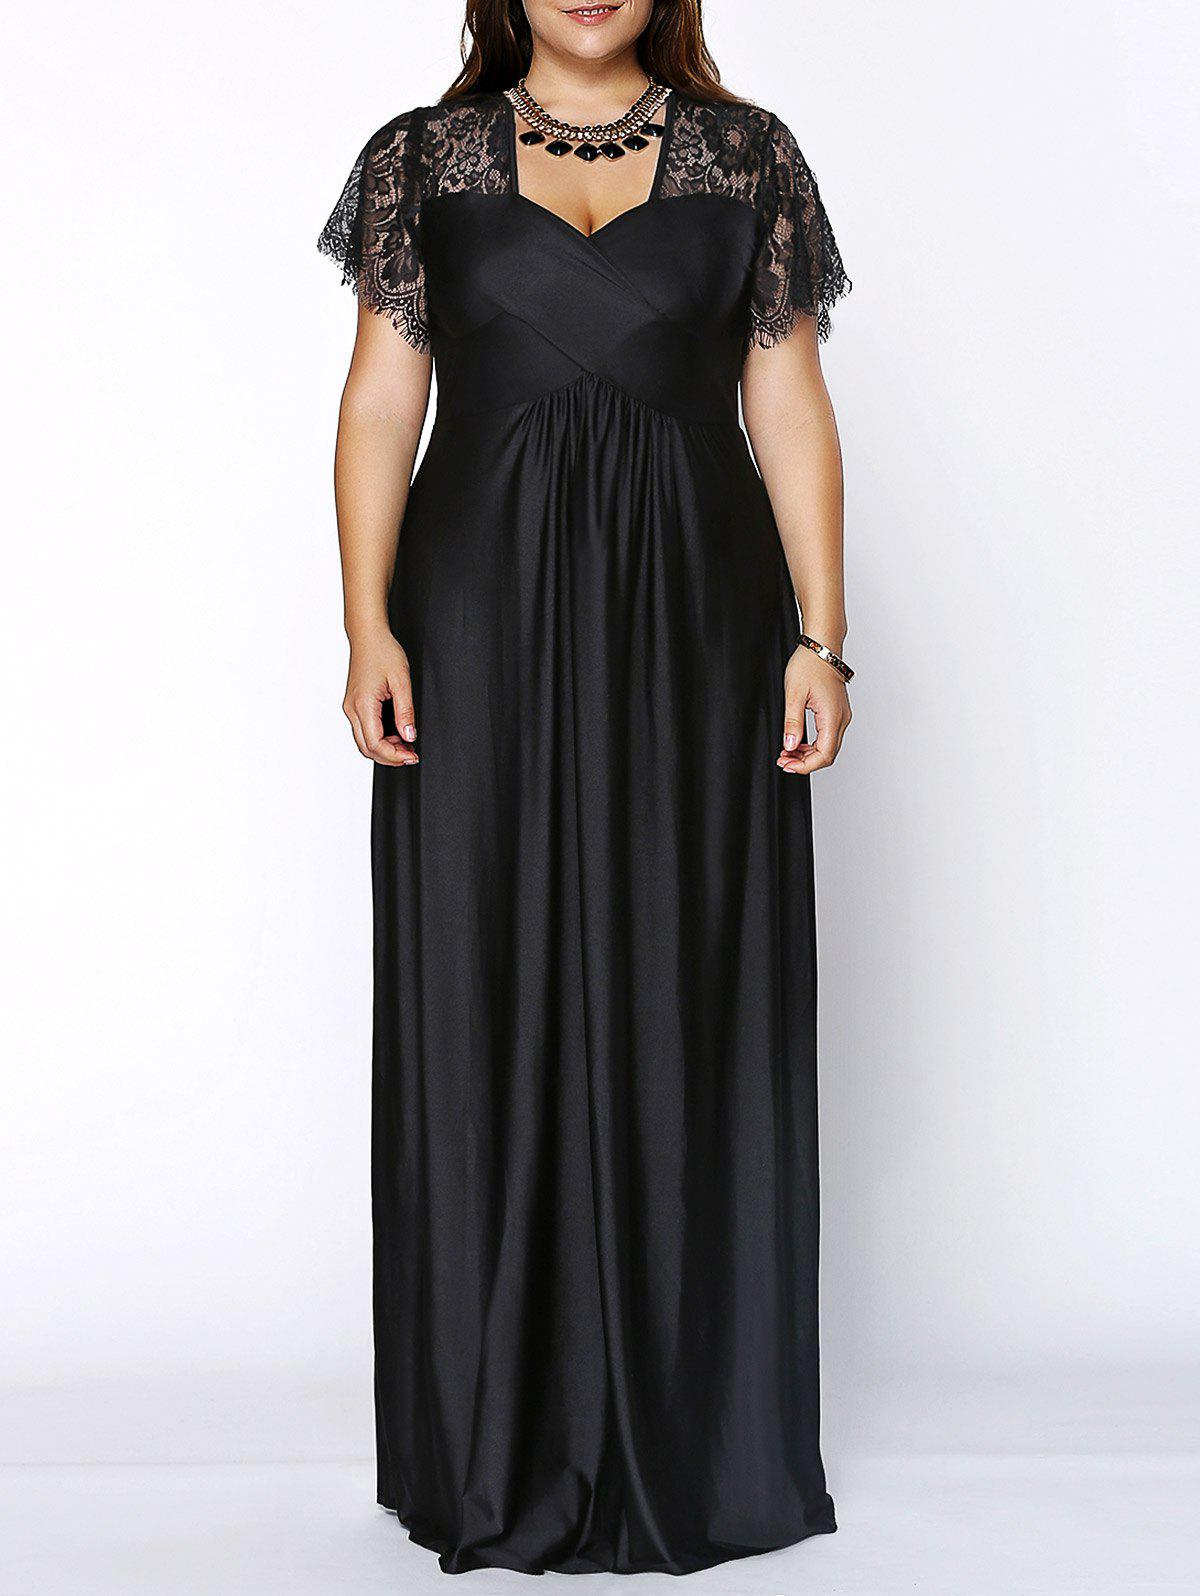 Plus Size Lace Short Sleeve Maxi Evening Party DressWOMEN<br><br>Size: 3XL; Color: BLACK; Style: Brief; Material: Polyester,Spandex; Silhouette: Ball Gown; Dresses Length: Ankle-Length; Neckline: Sweetheart Neck; Sleeve Length: Short Sleeves; Pattern Type: Patchwork; With Belt: No; Season: Summer; Weight: 0.5870kg; Package Contents: 1 x Dress;